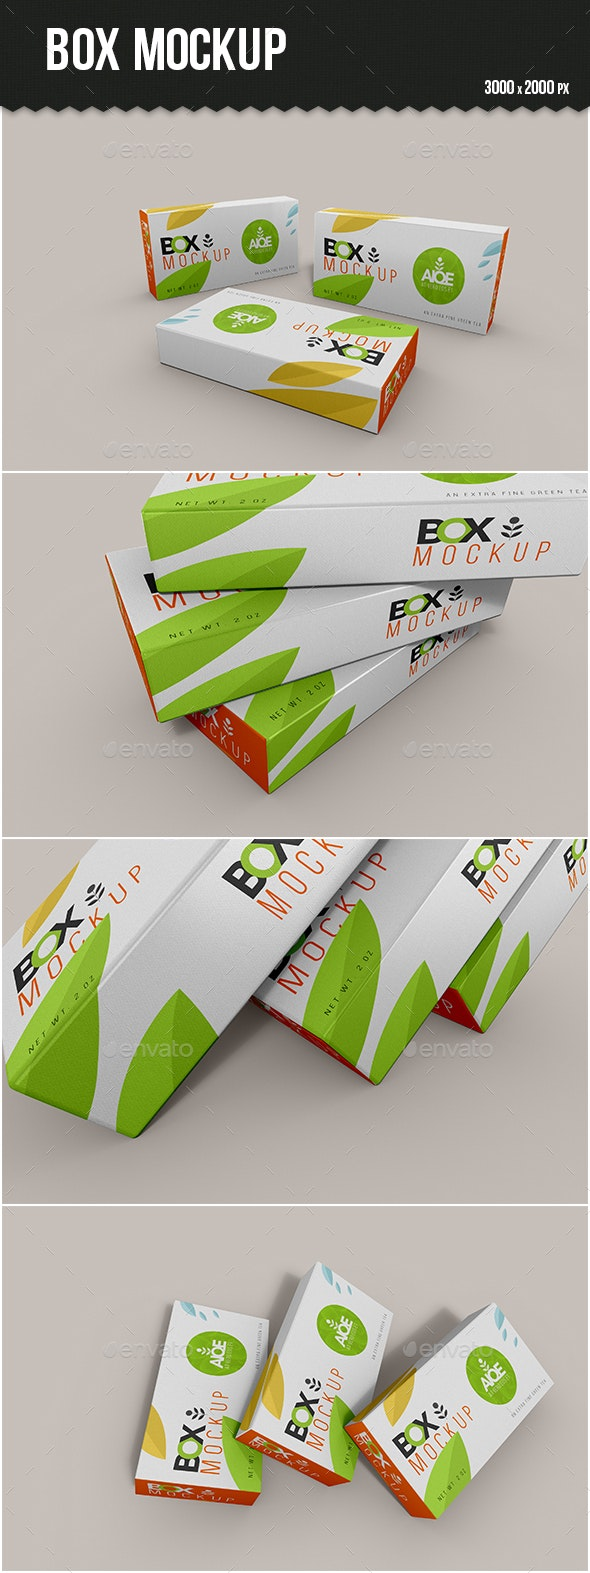 Box Mock-up - Packaging Product Mock-Ups